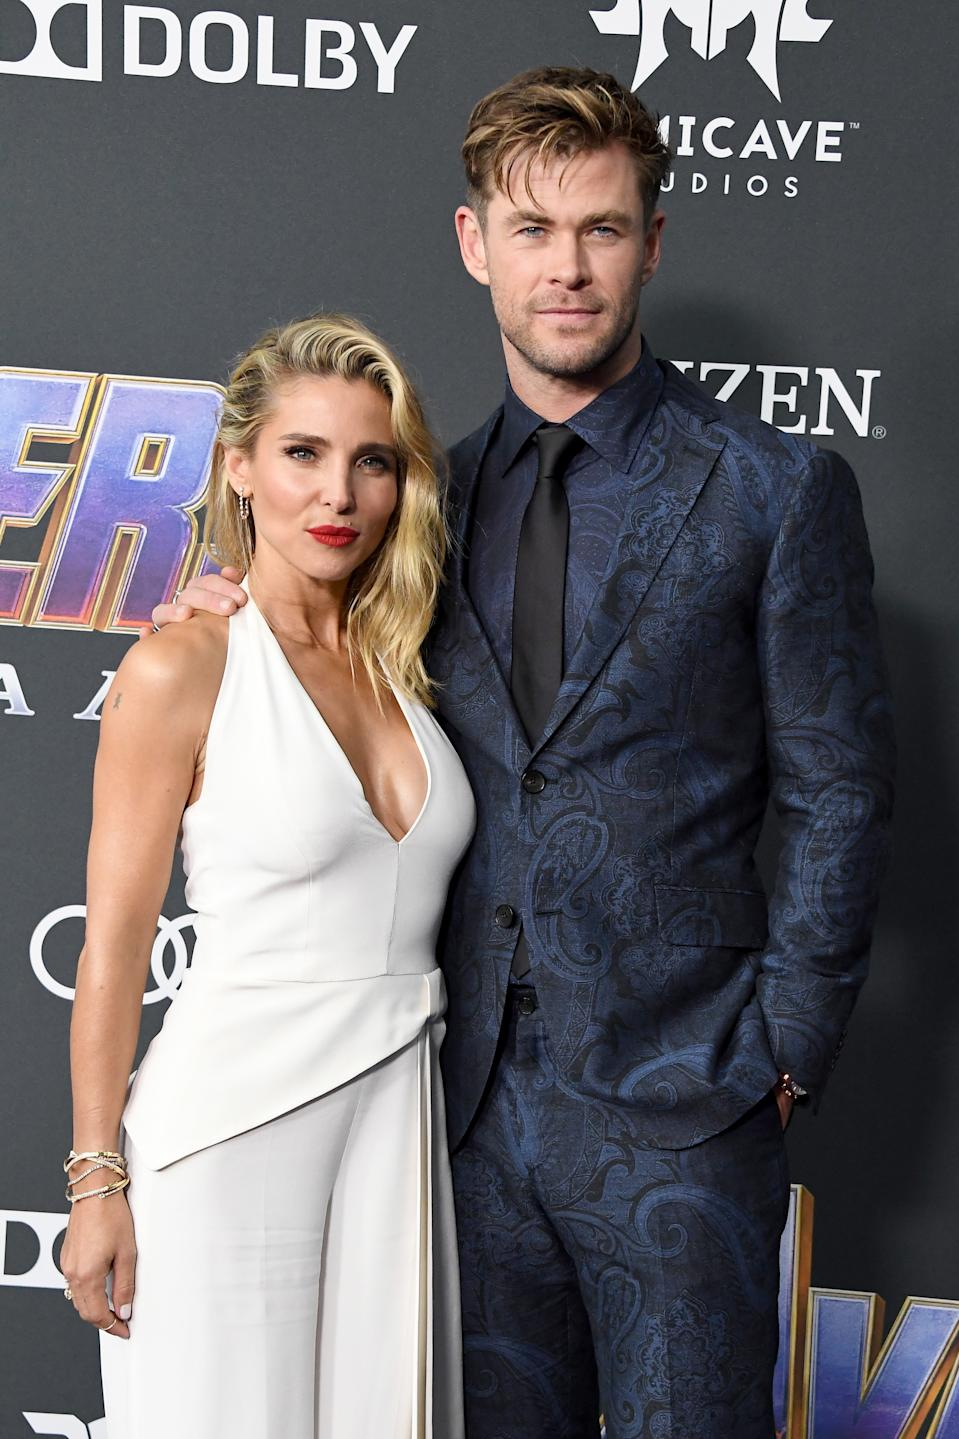 Elsa Pataky (L) and Chris Hemsworth live in Byron Bay, down to earth relatable personas.